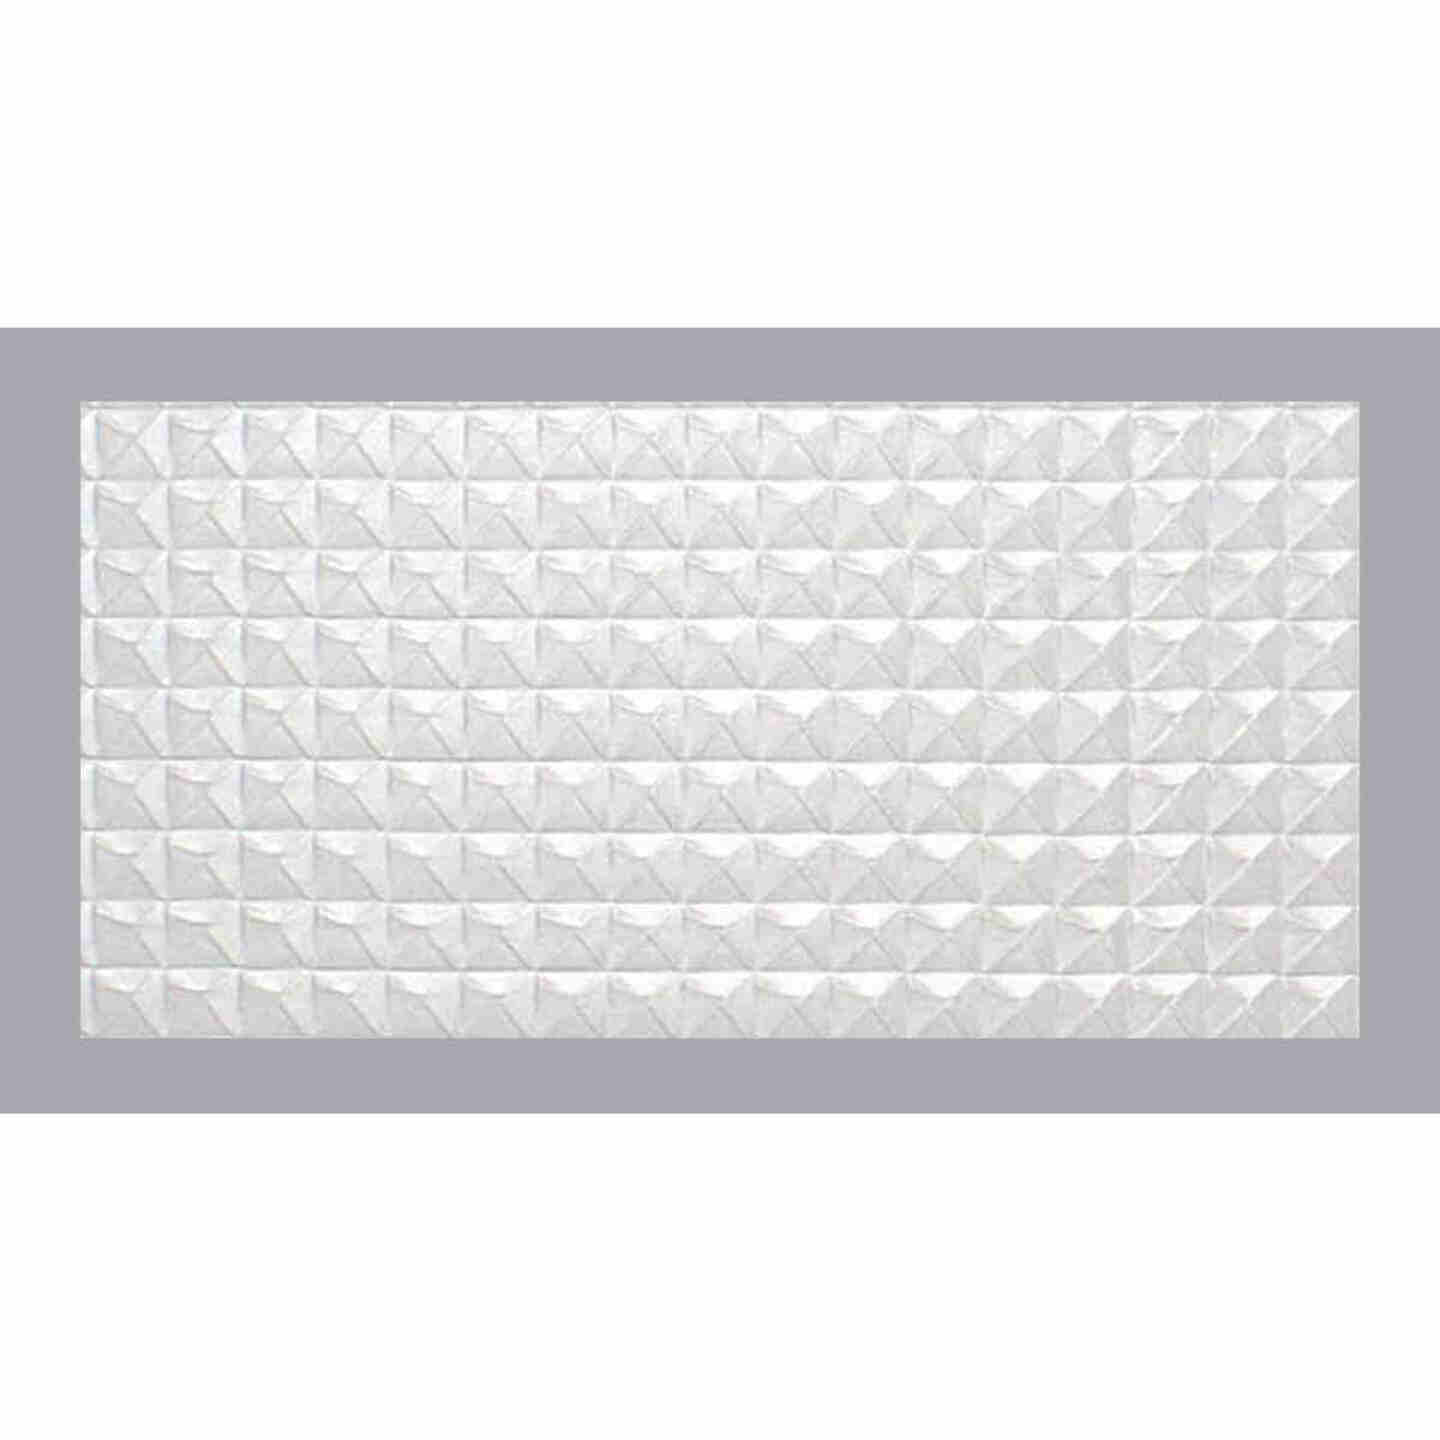 Parkland Performance SpectraTile Millennium 2 Ft. x 4 Ft. White PVC Diamond Pyramid Suspended Ceiling Tile  Image 2